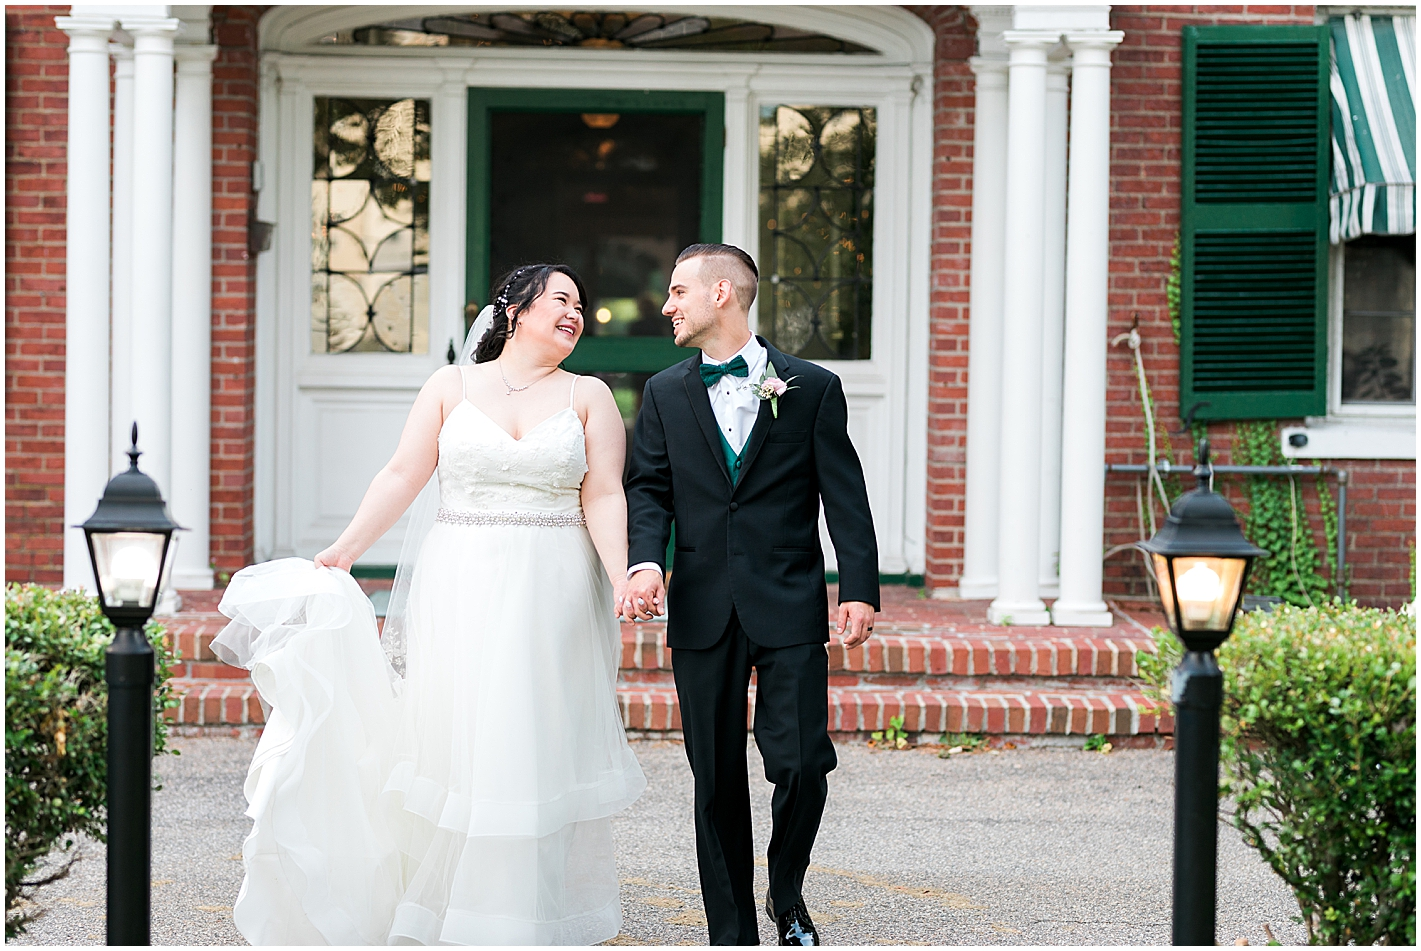 Bride and Groom Formals at Governors Inn Photos by Alyssa Parker Photography